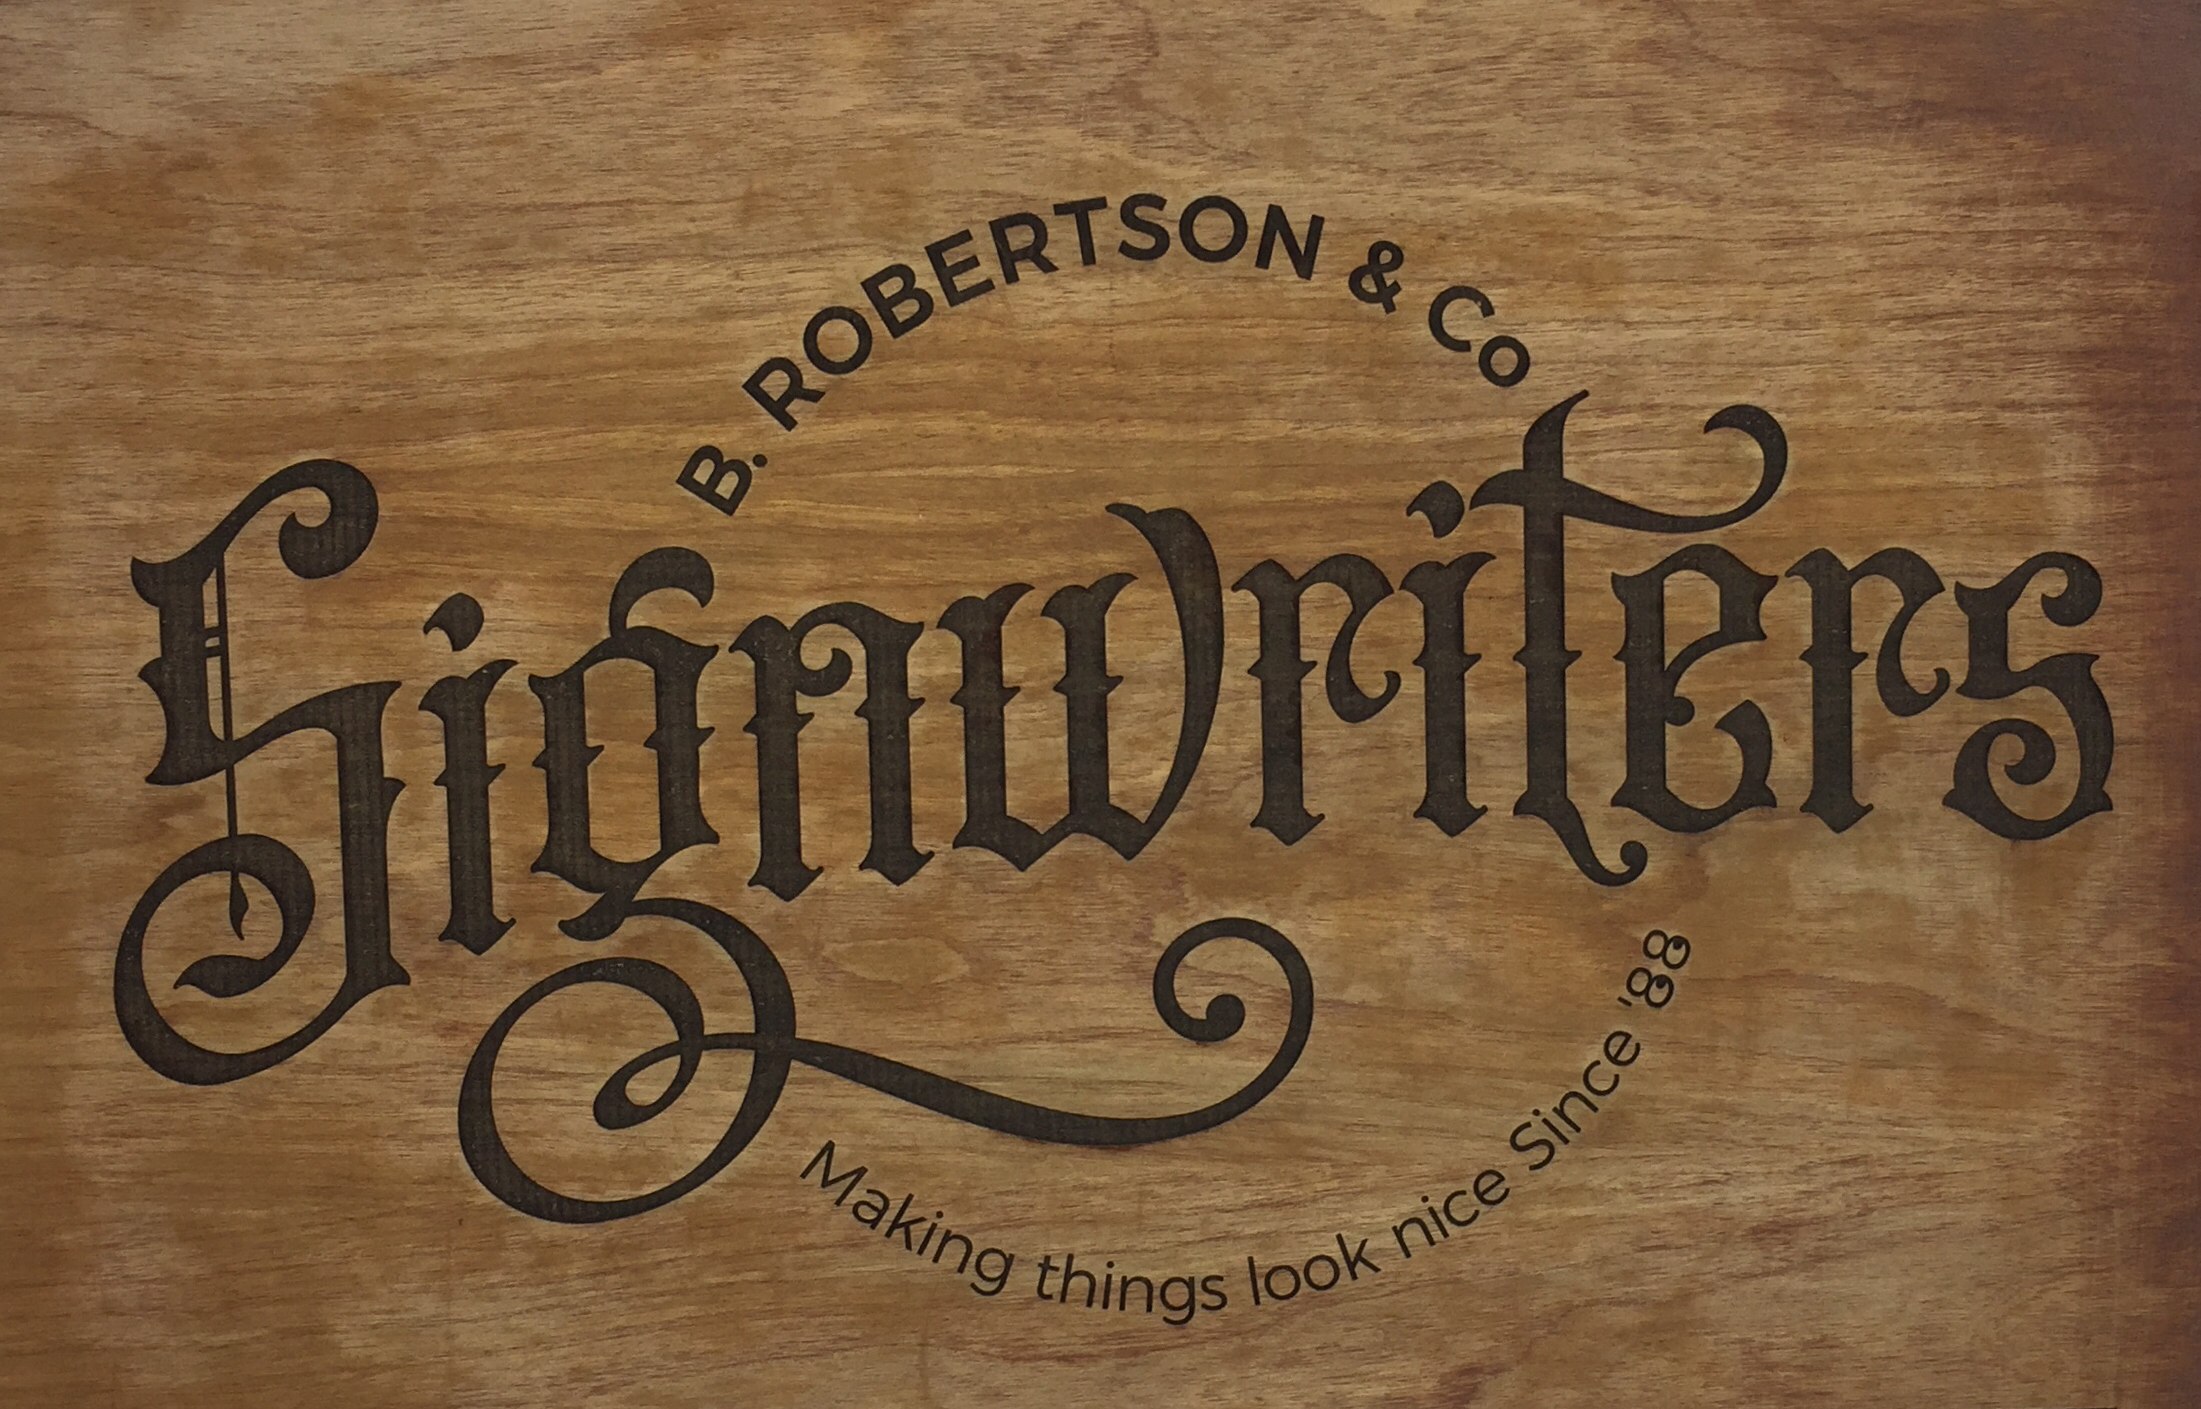 Laser engraved wood for Robertson Signs